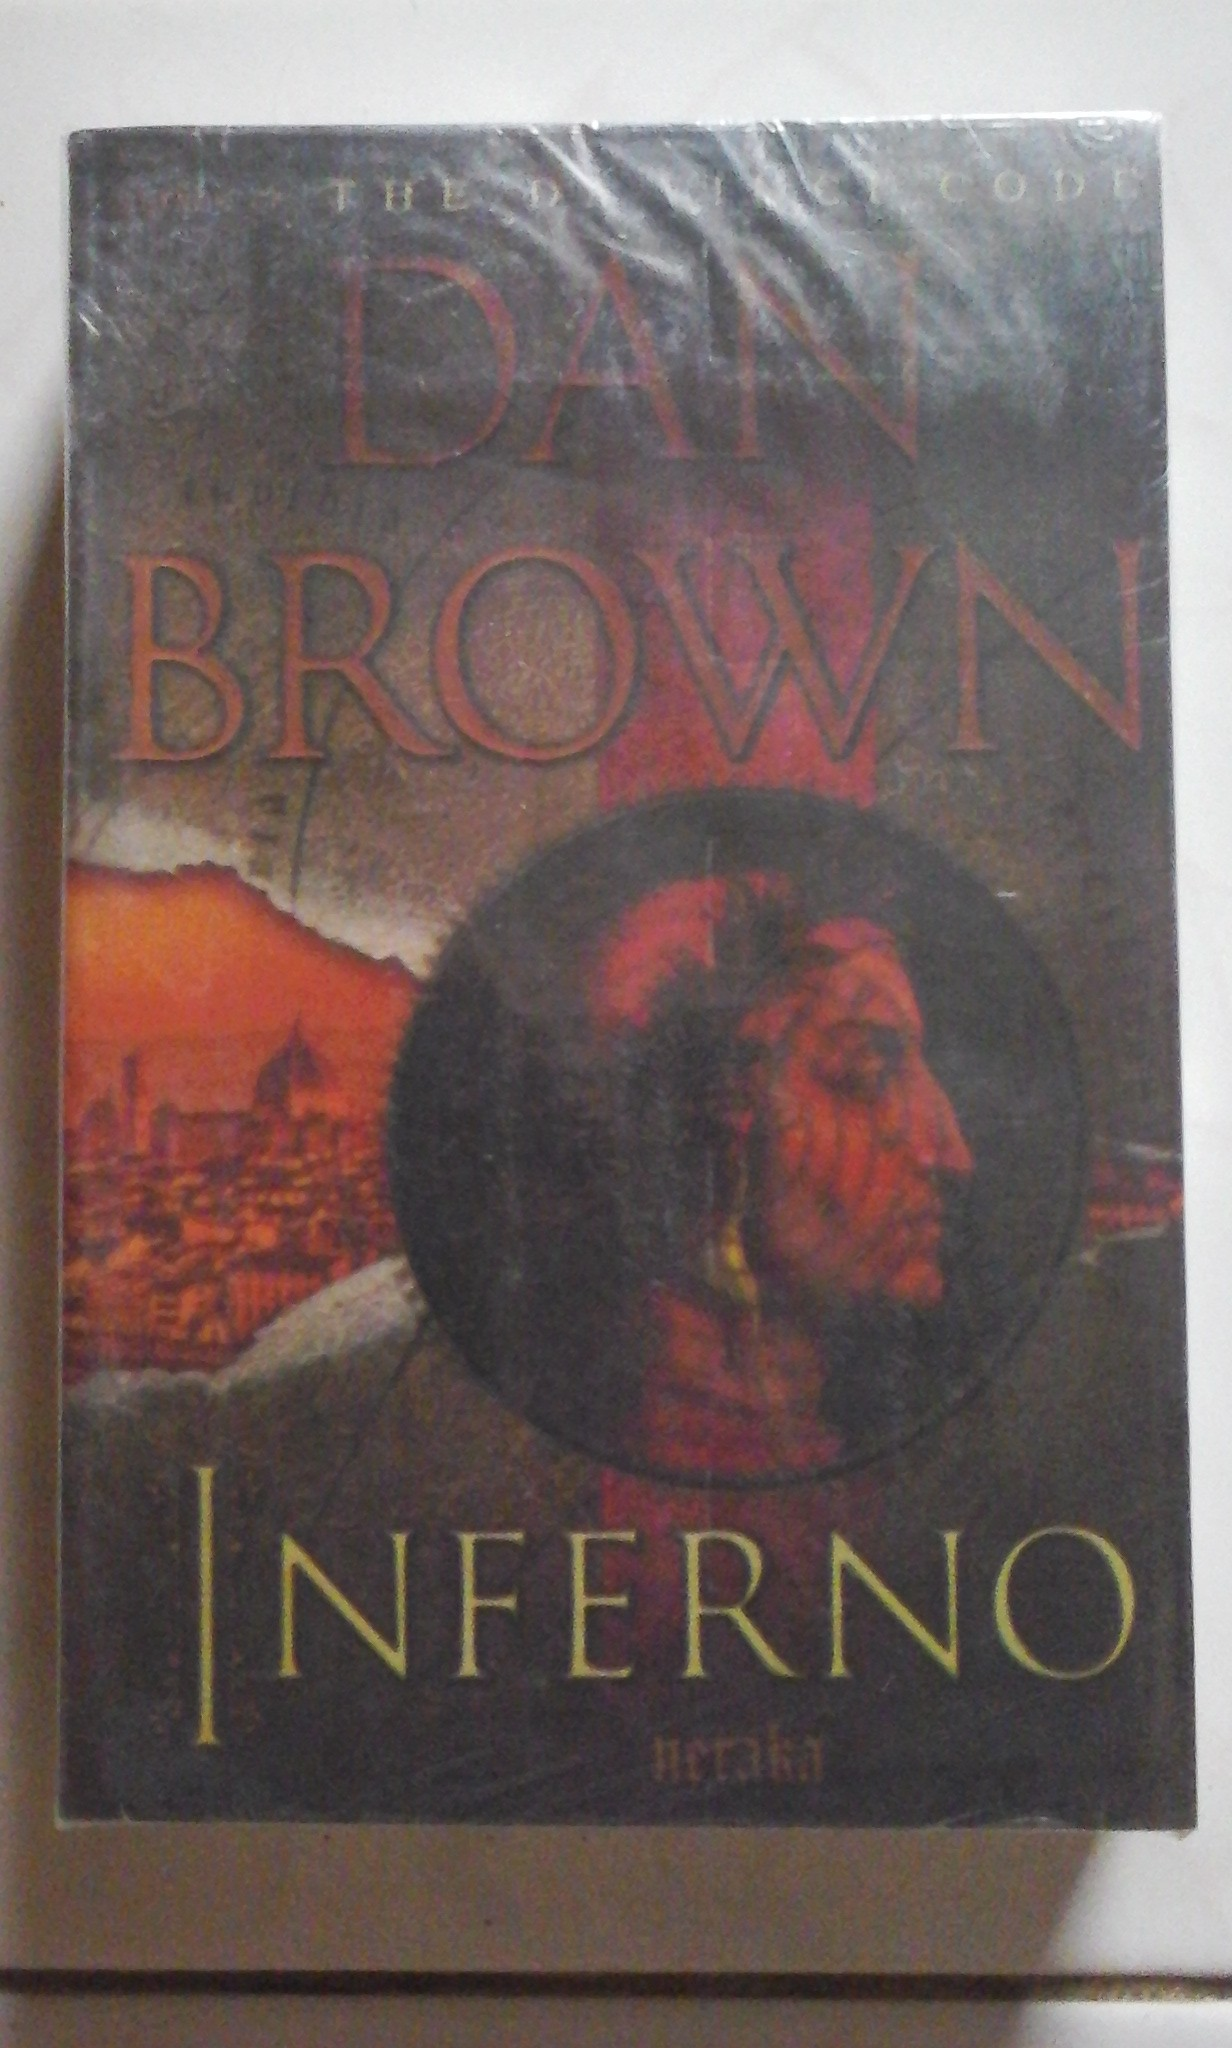 inferno dan brown Inferno by dan brown, 9780593072493, available at book depository with free delivery worldwide.